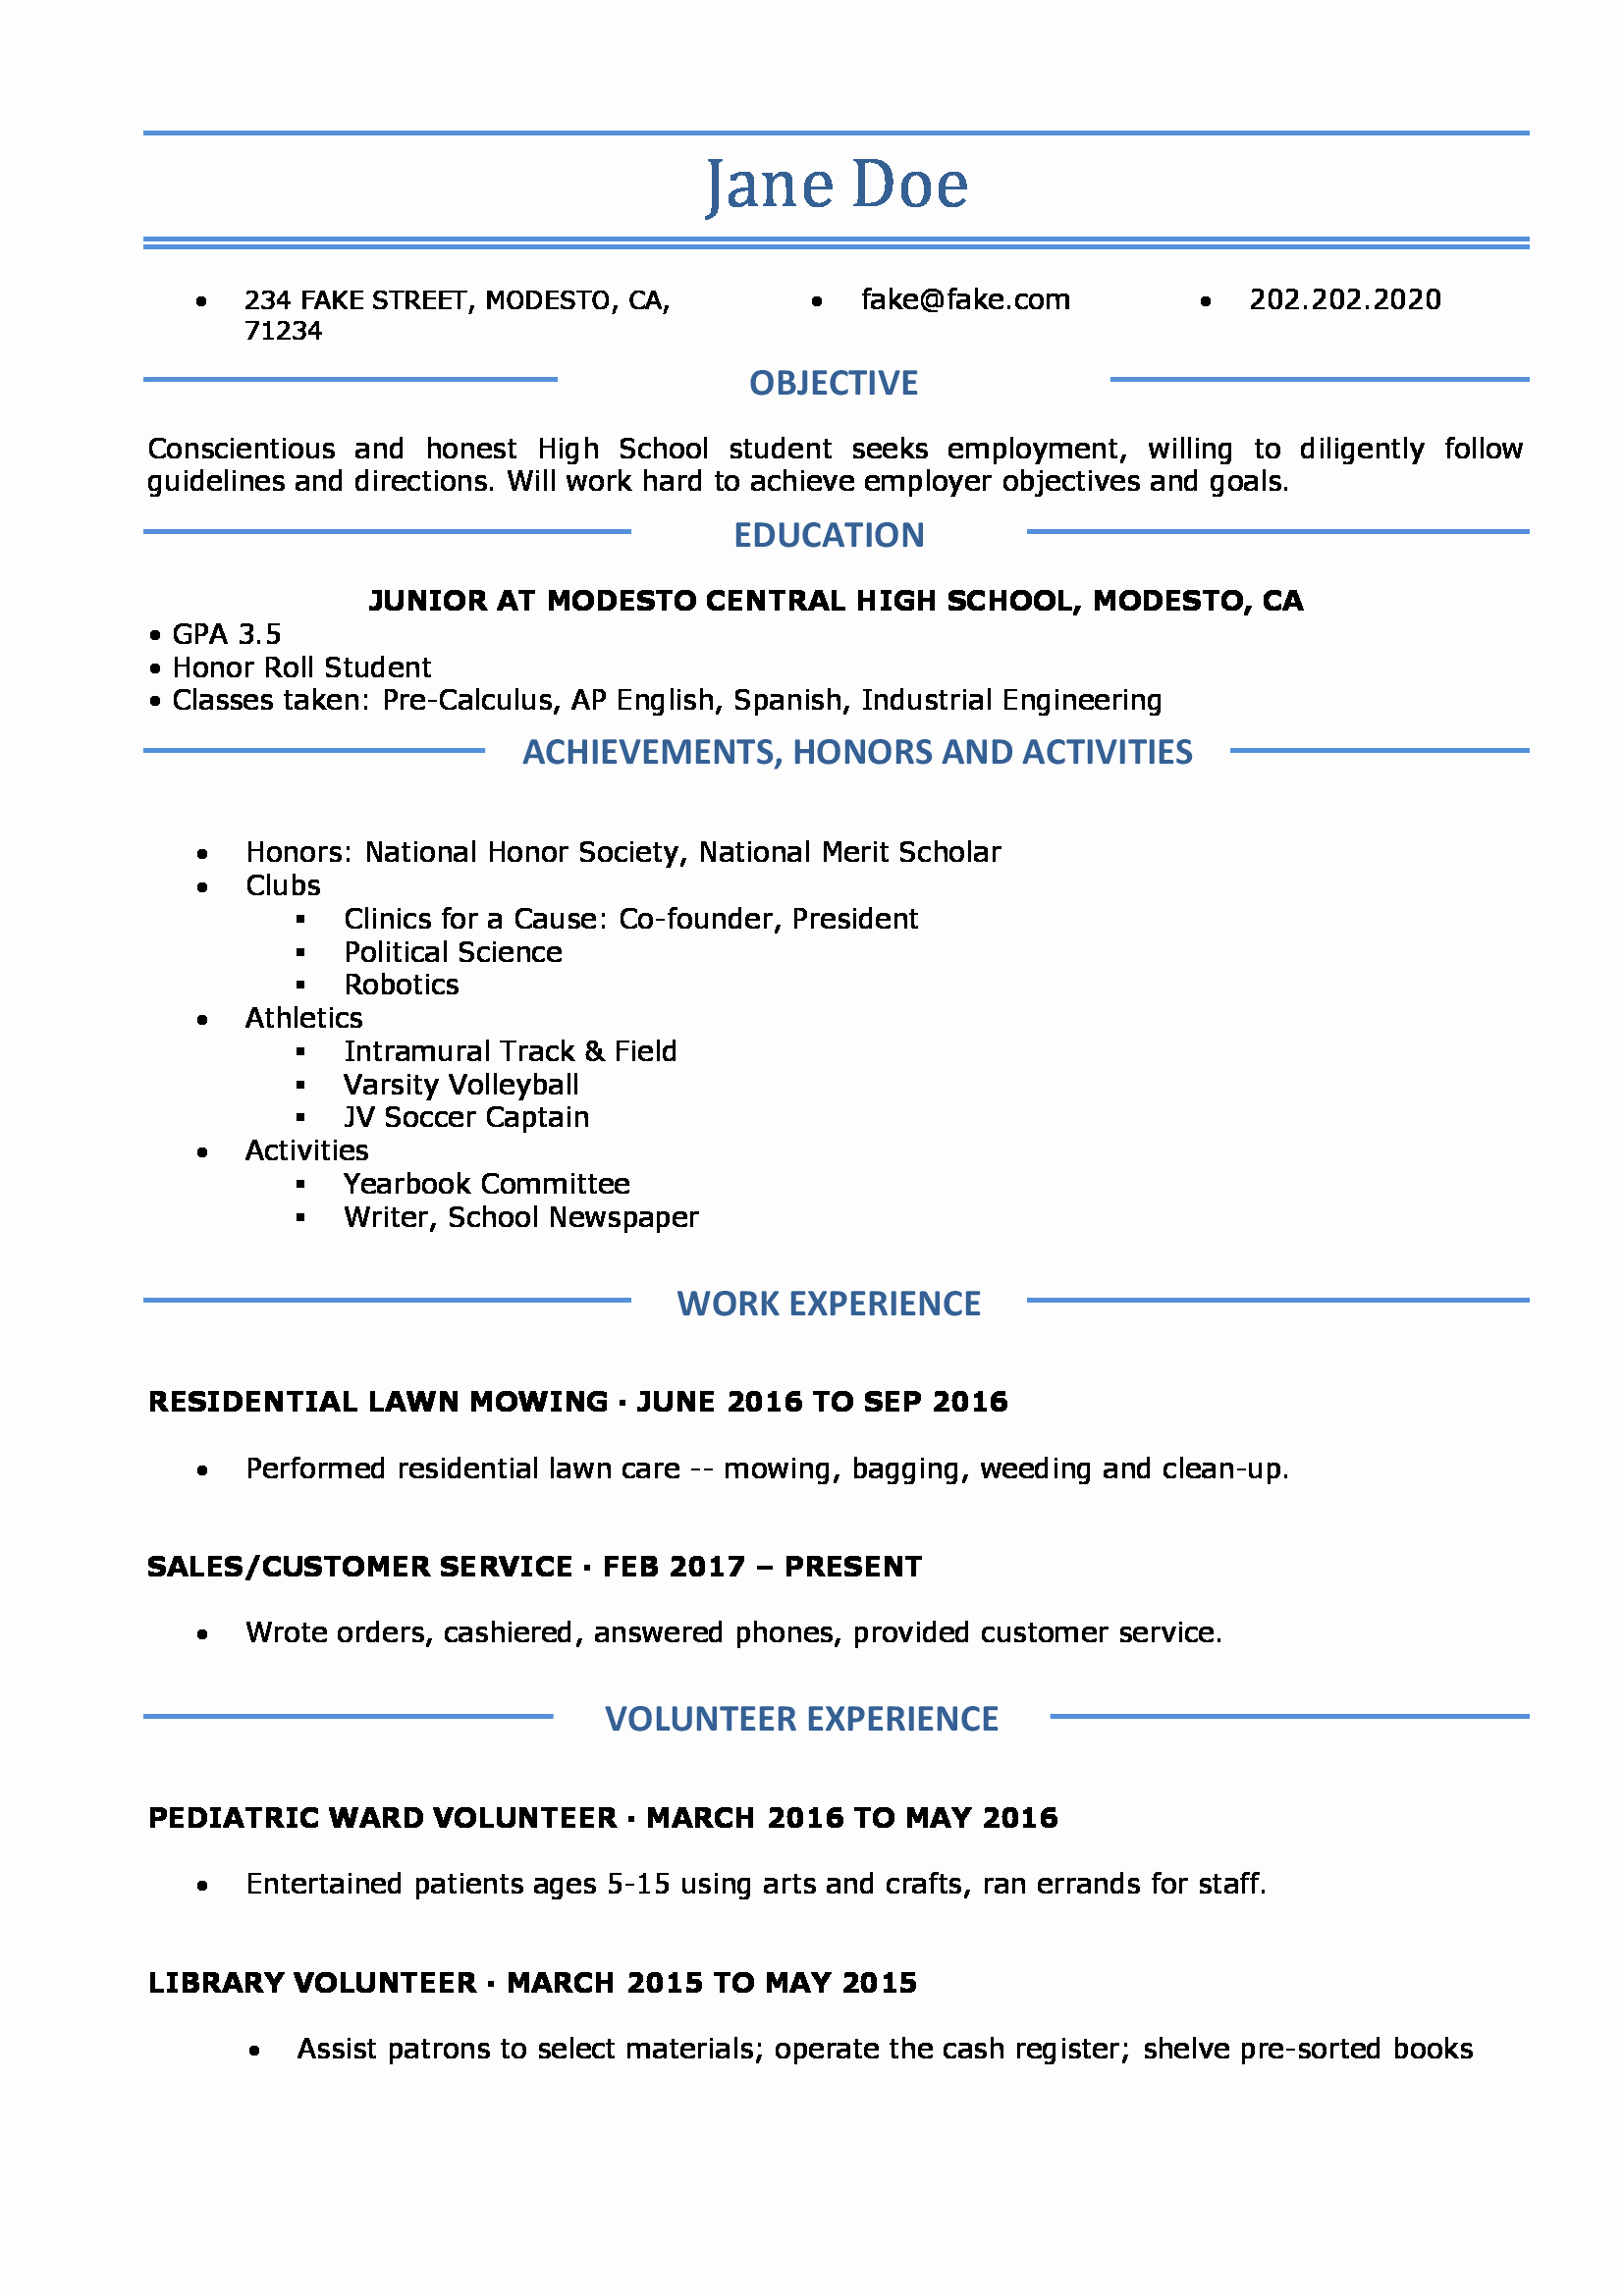 Resume Examples for Highschool Students Inspirational High School Resume High School Resume Templates